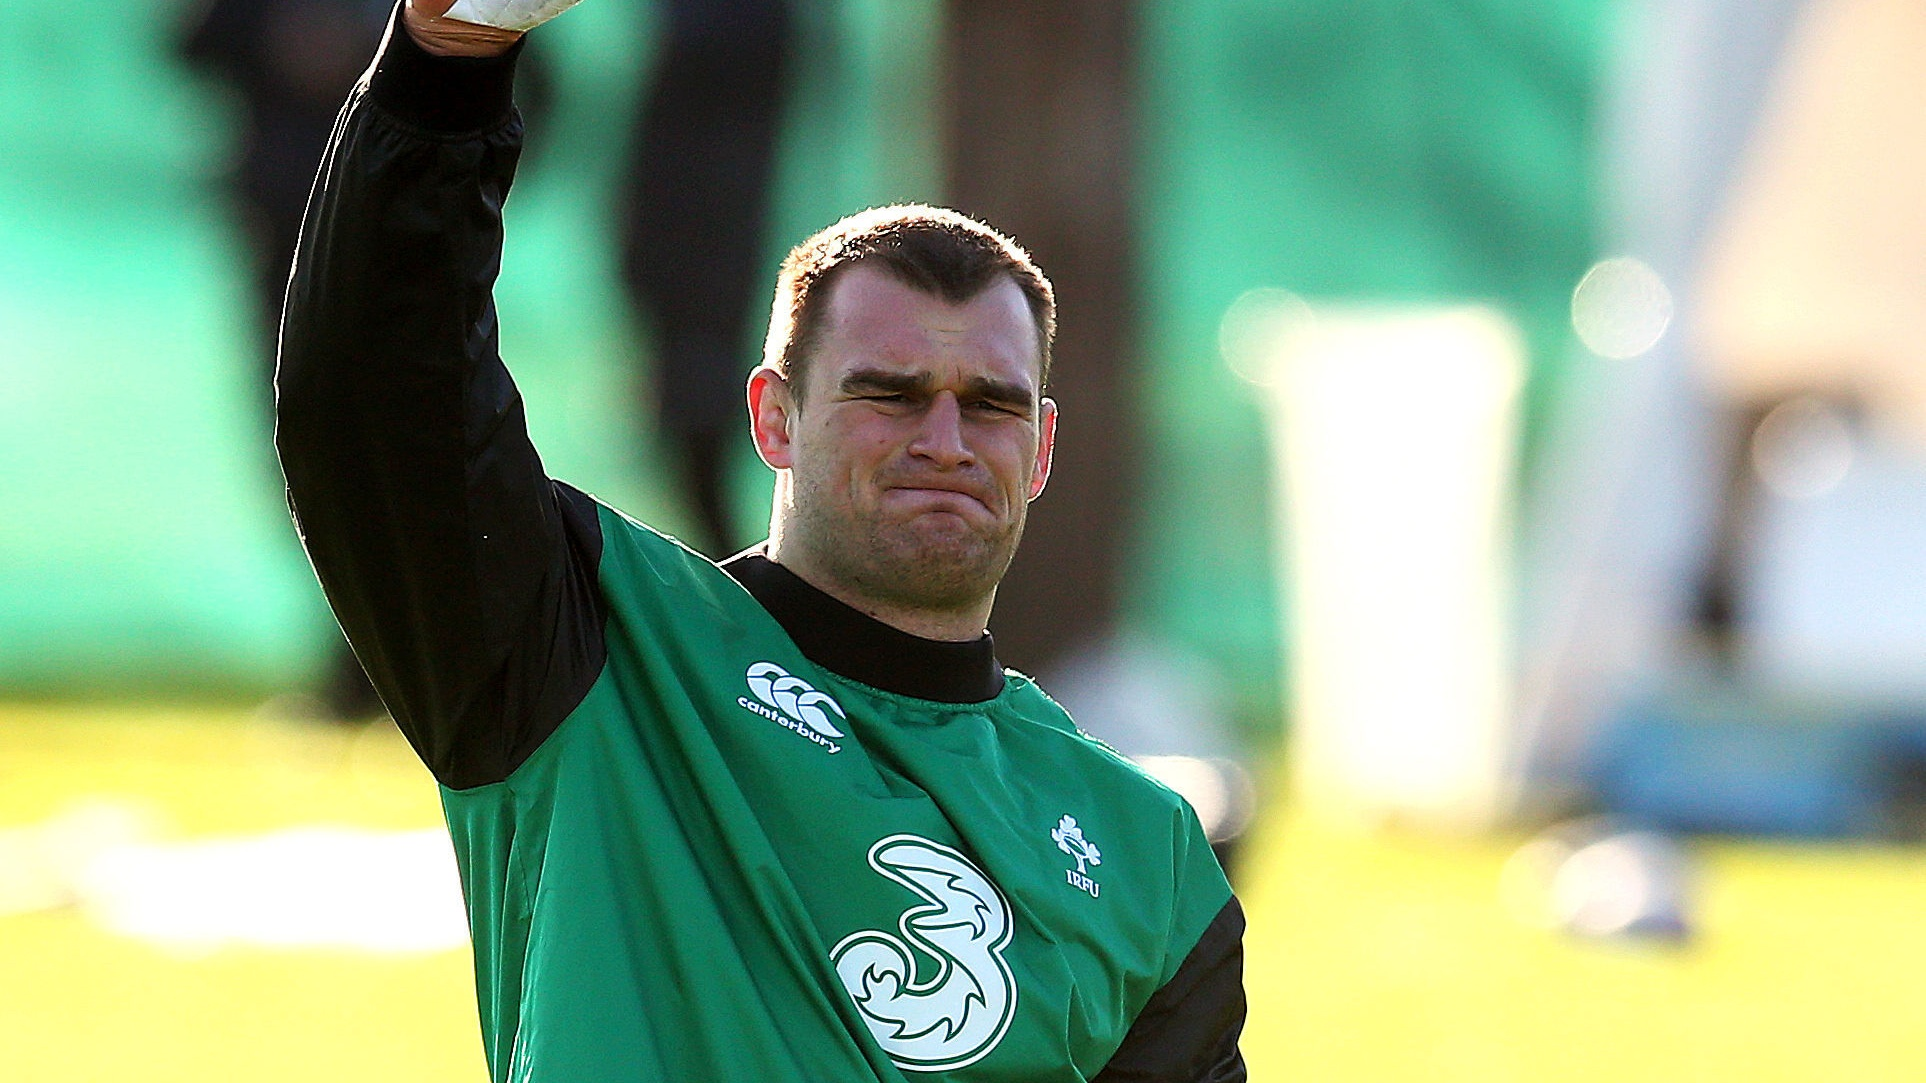 Ireland scores 7 tries to overpower Japan 50-22